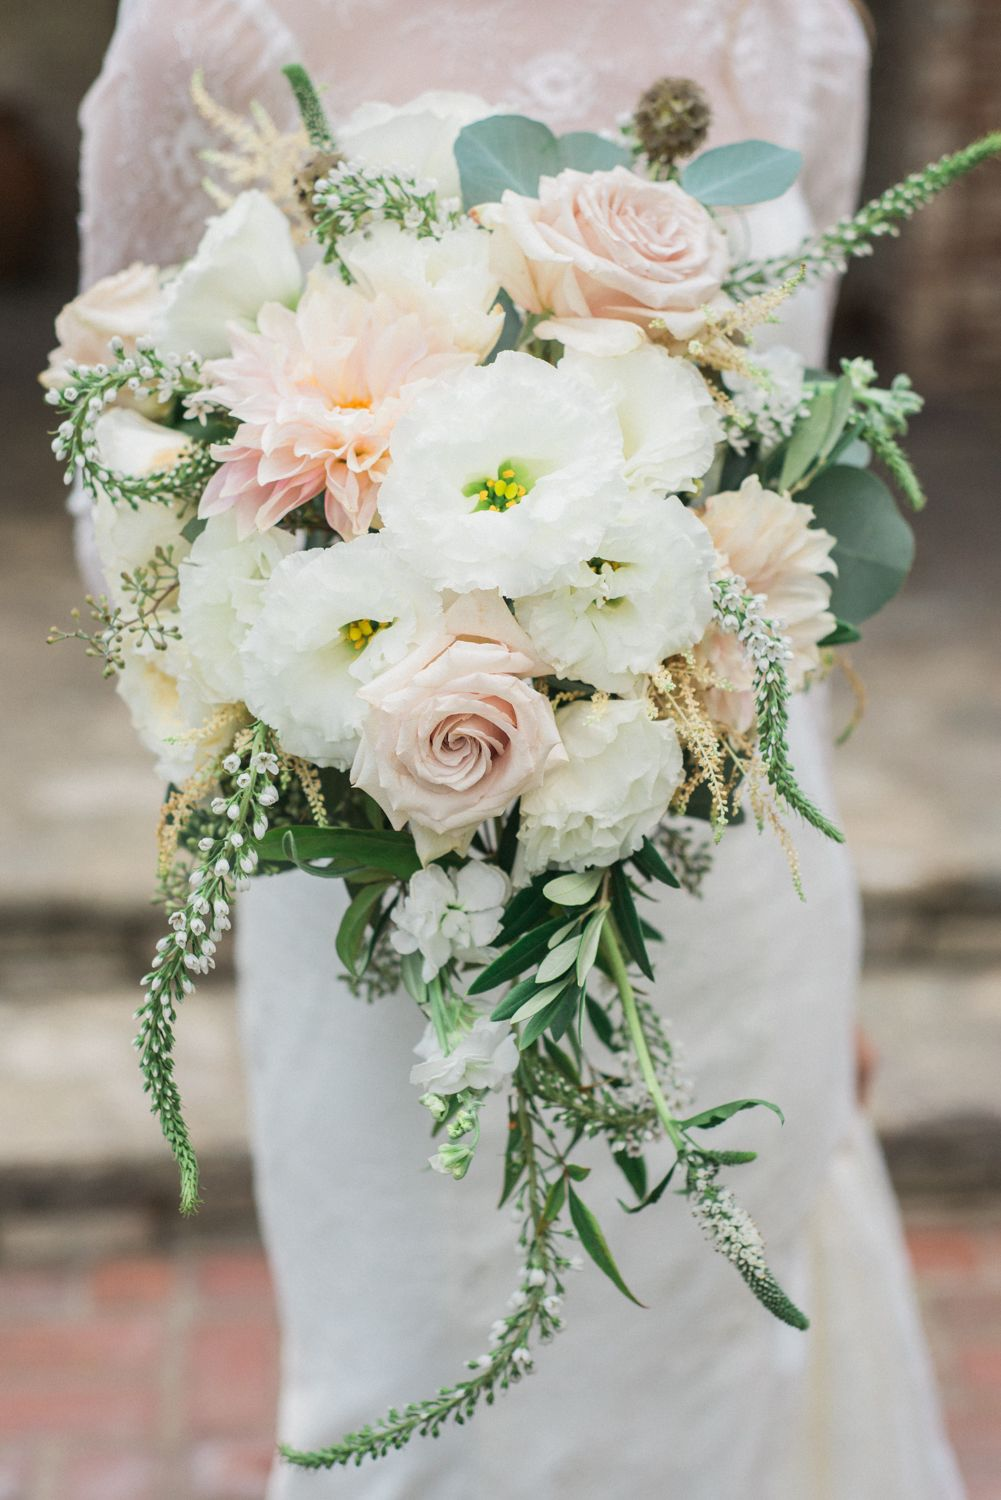 Wedding Inspiration For A Whimsical Bridal Bouquet White Green And Blush Image By